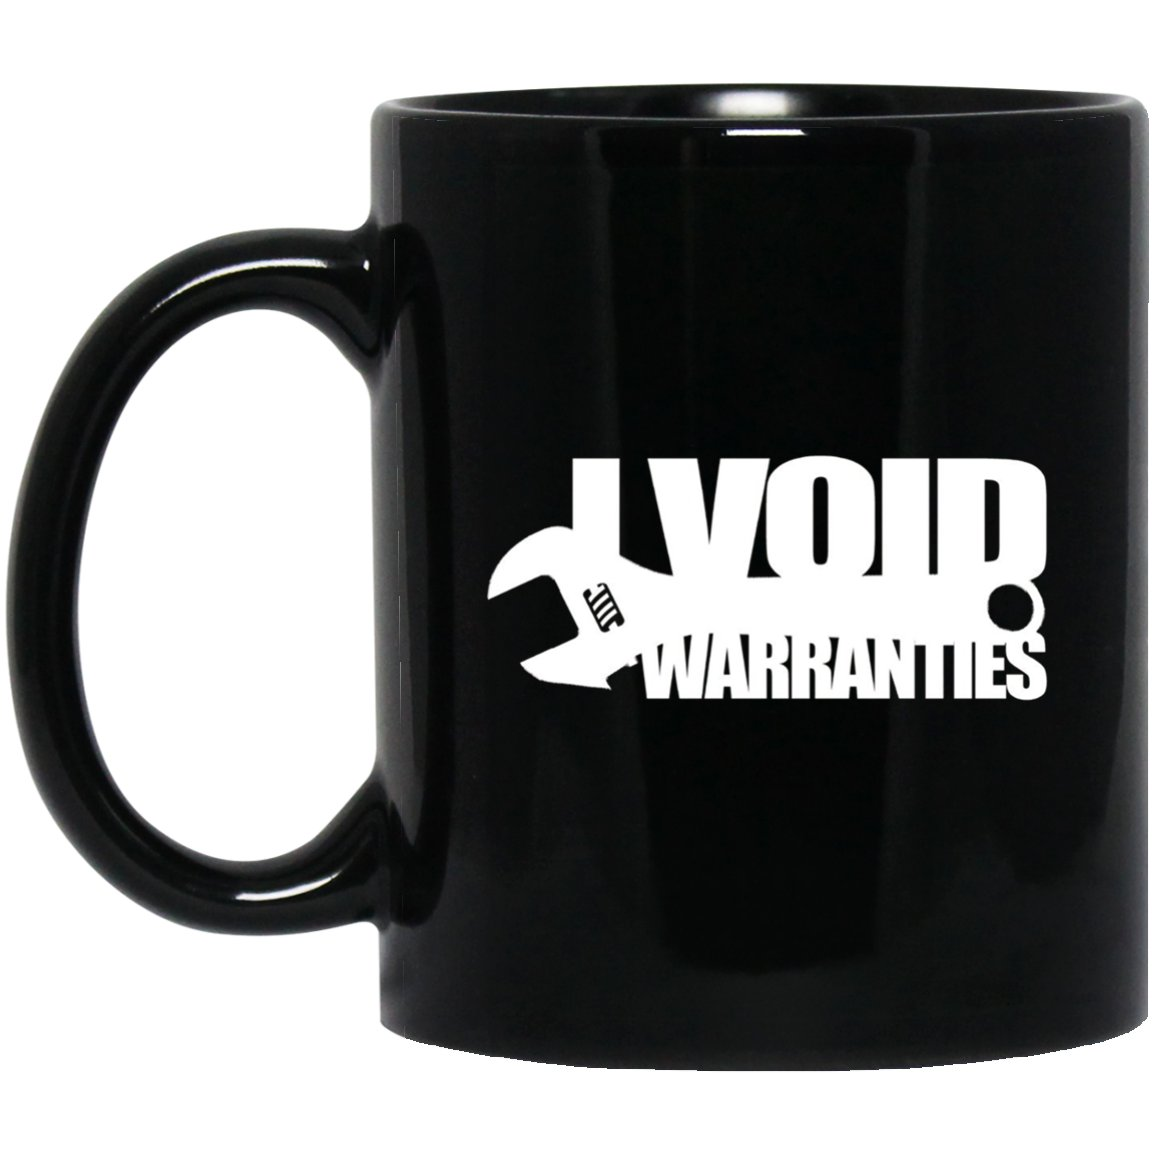 Funny Mechanic I Void Warranties Black  Mug Black Ceramic 11oz Coffee Tea Cup